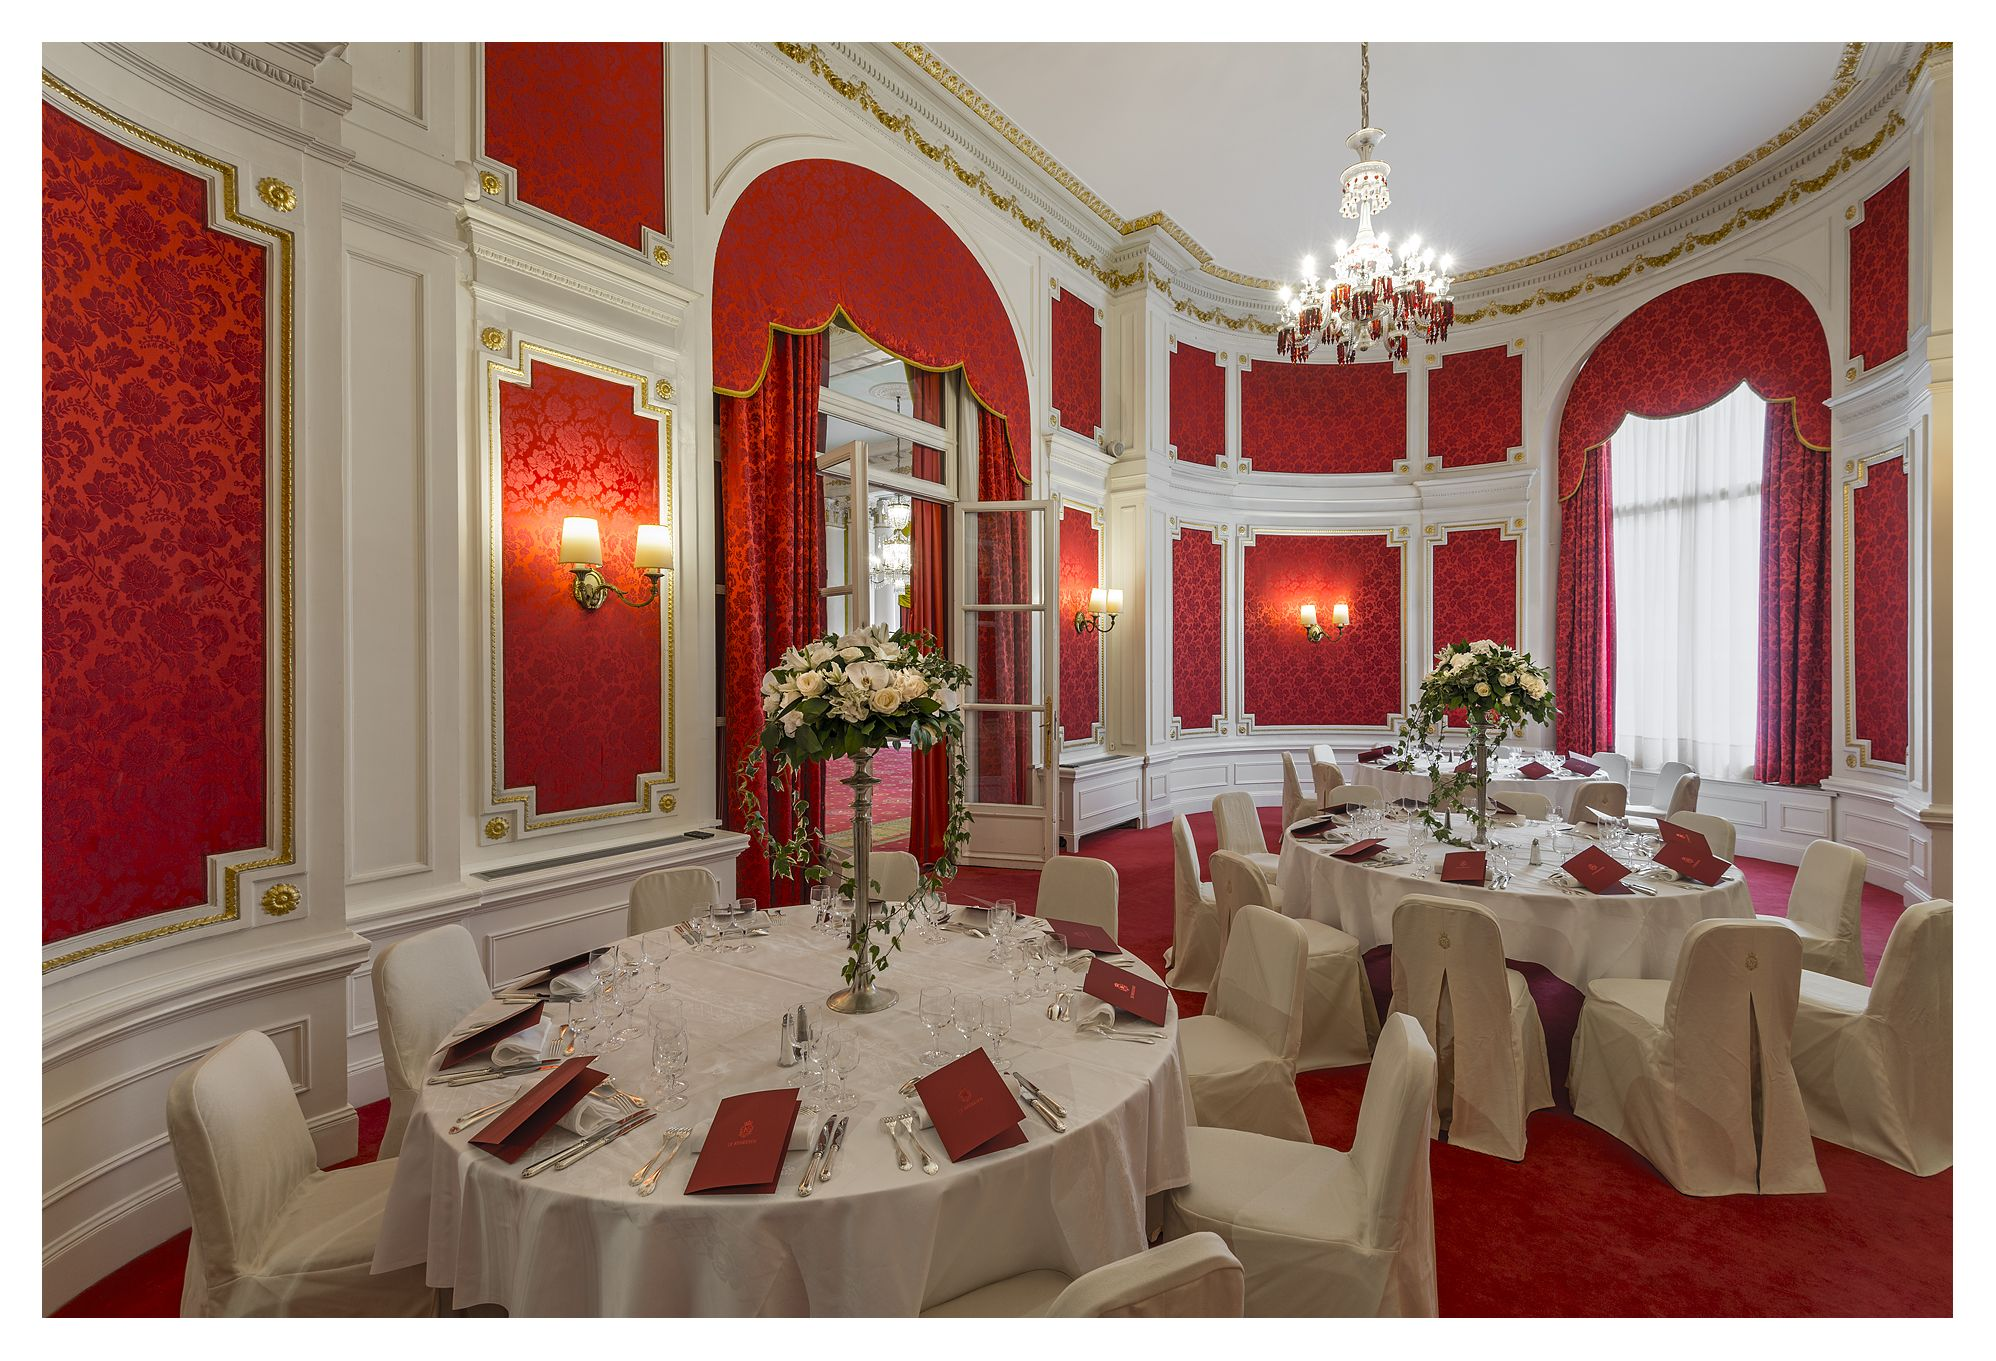 Salon louis xvi louis xvi lounge negresco nice red for Salon louis 16